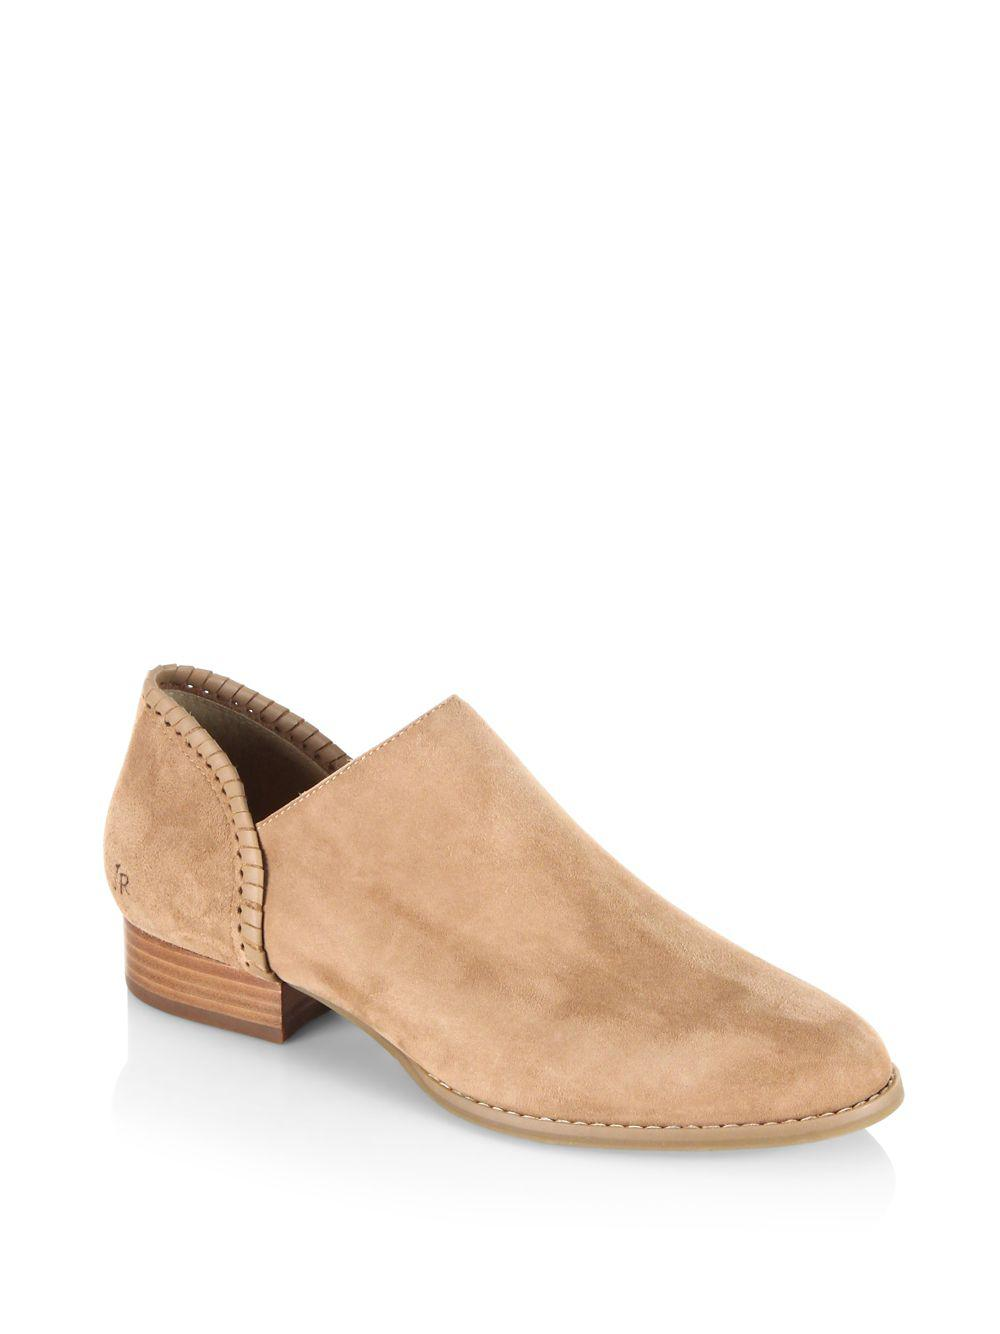 Jack Rogers Avery Leather & Suede Oxfords